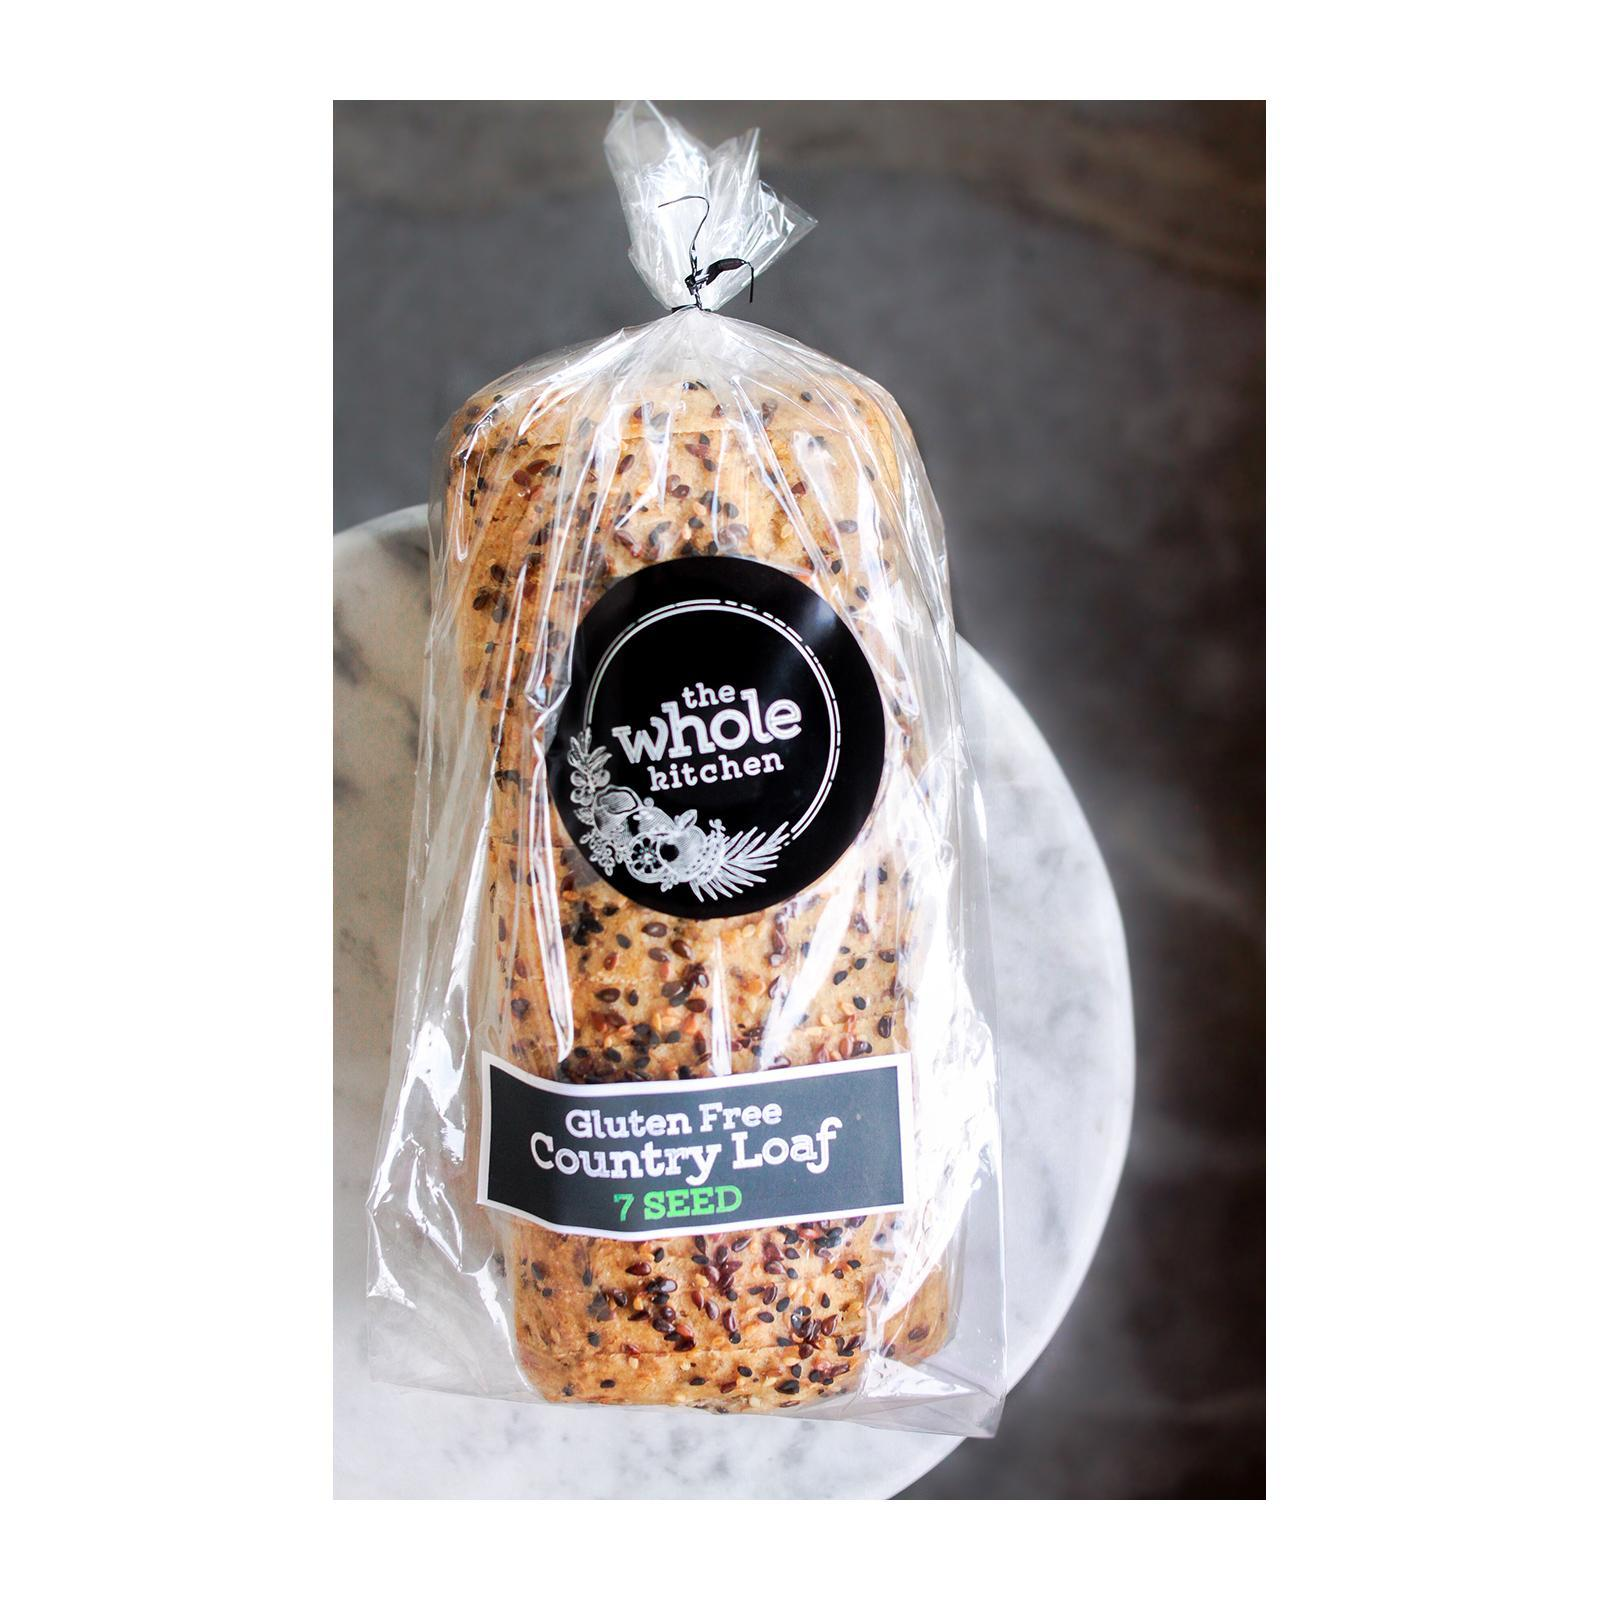 The Whole Kitchen Gluten Free Country Loaf - 7 SEED - Frozen